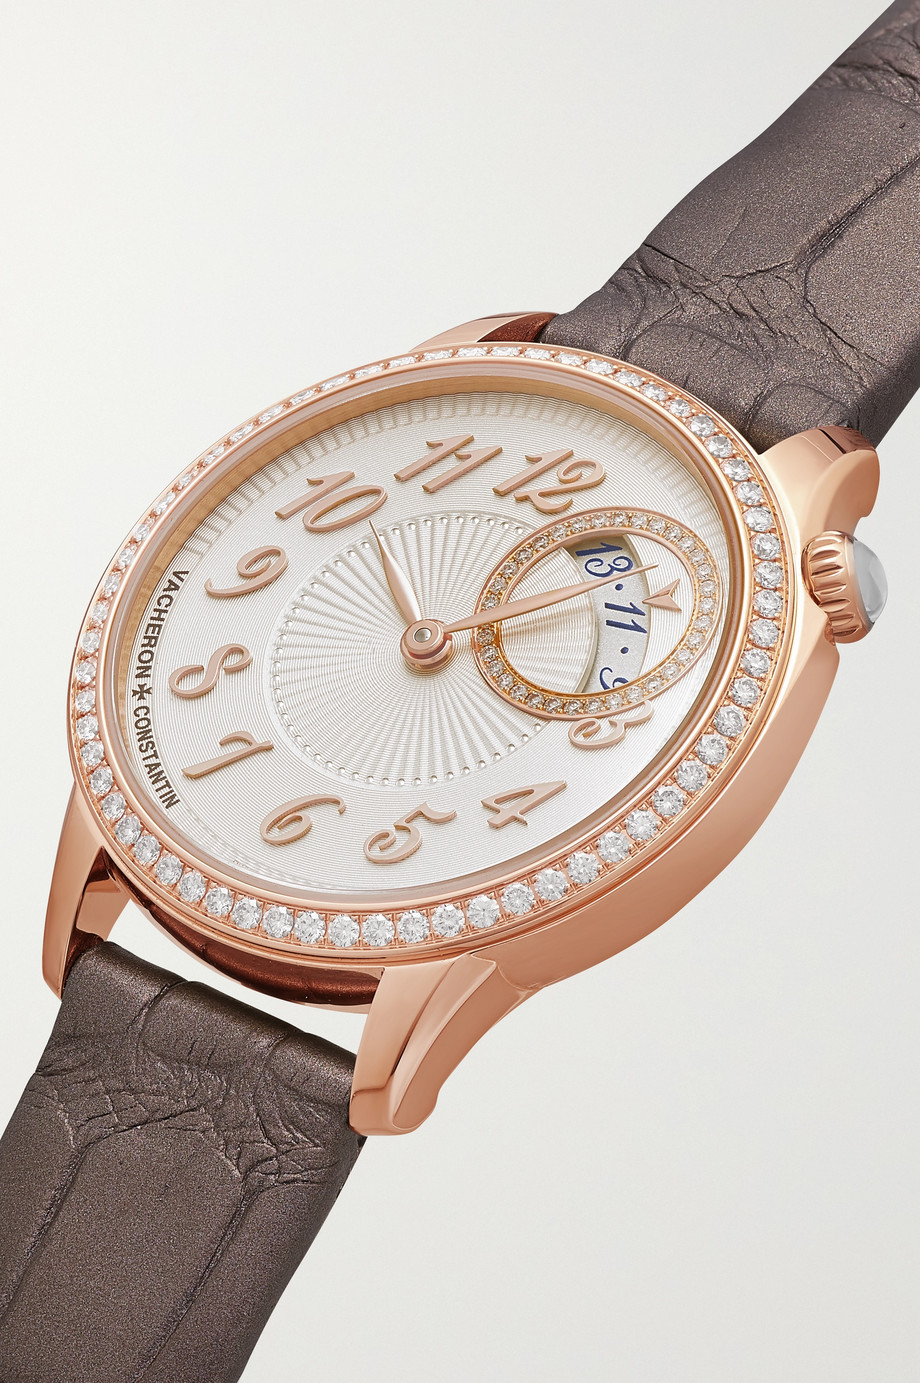 Vacheron Constantin Égérie 30mm 18-karat pink gold, alligator and diamond watch